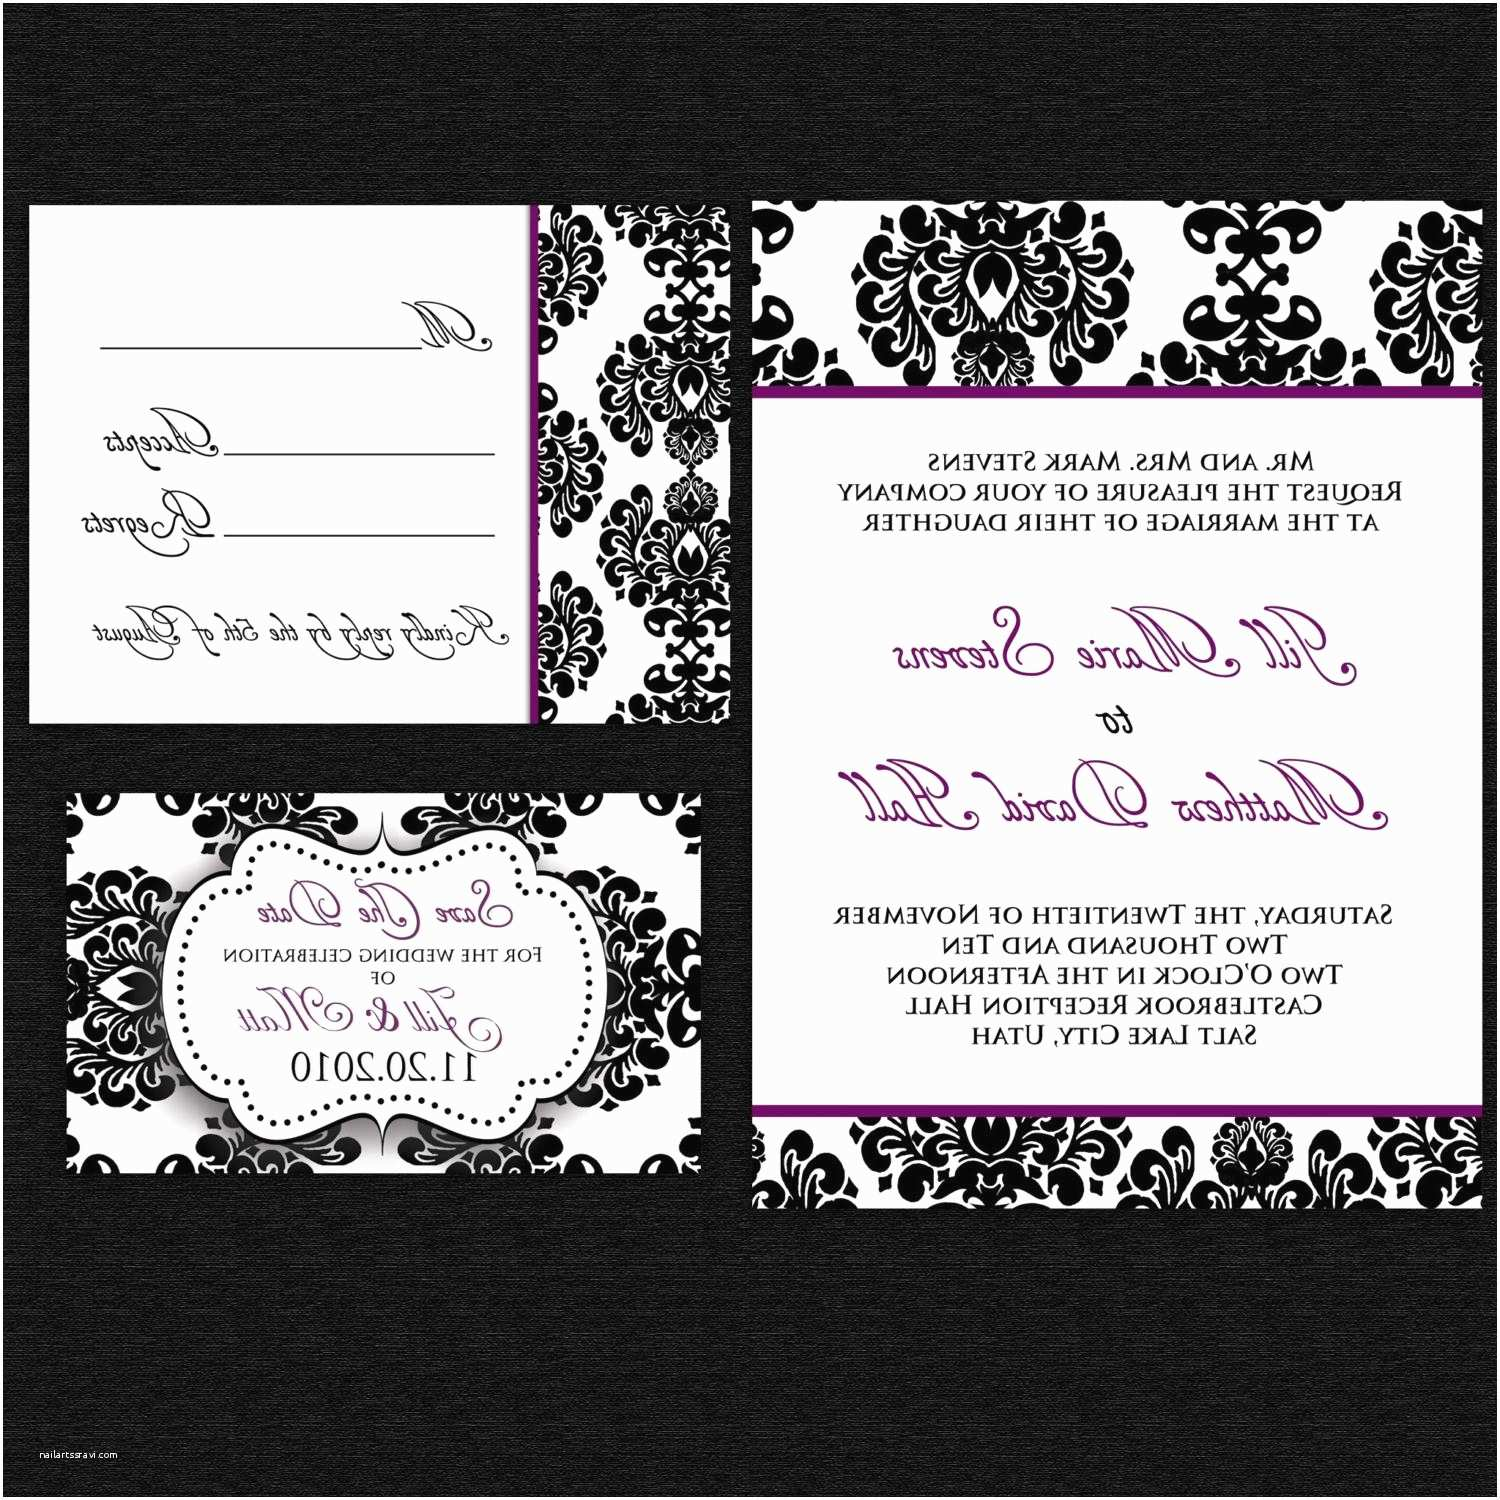 How to Package Wedding Invitations Joy S Blog Damask Wedding Invitation Save the Date Rsvp